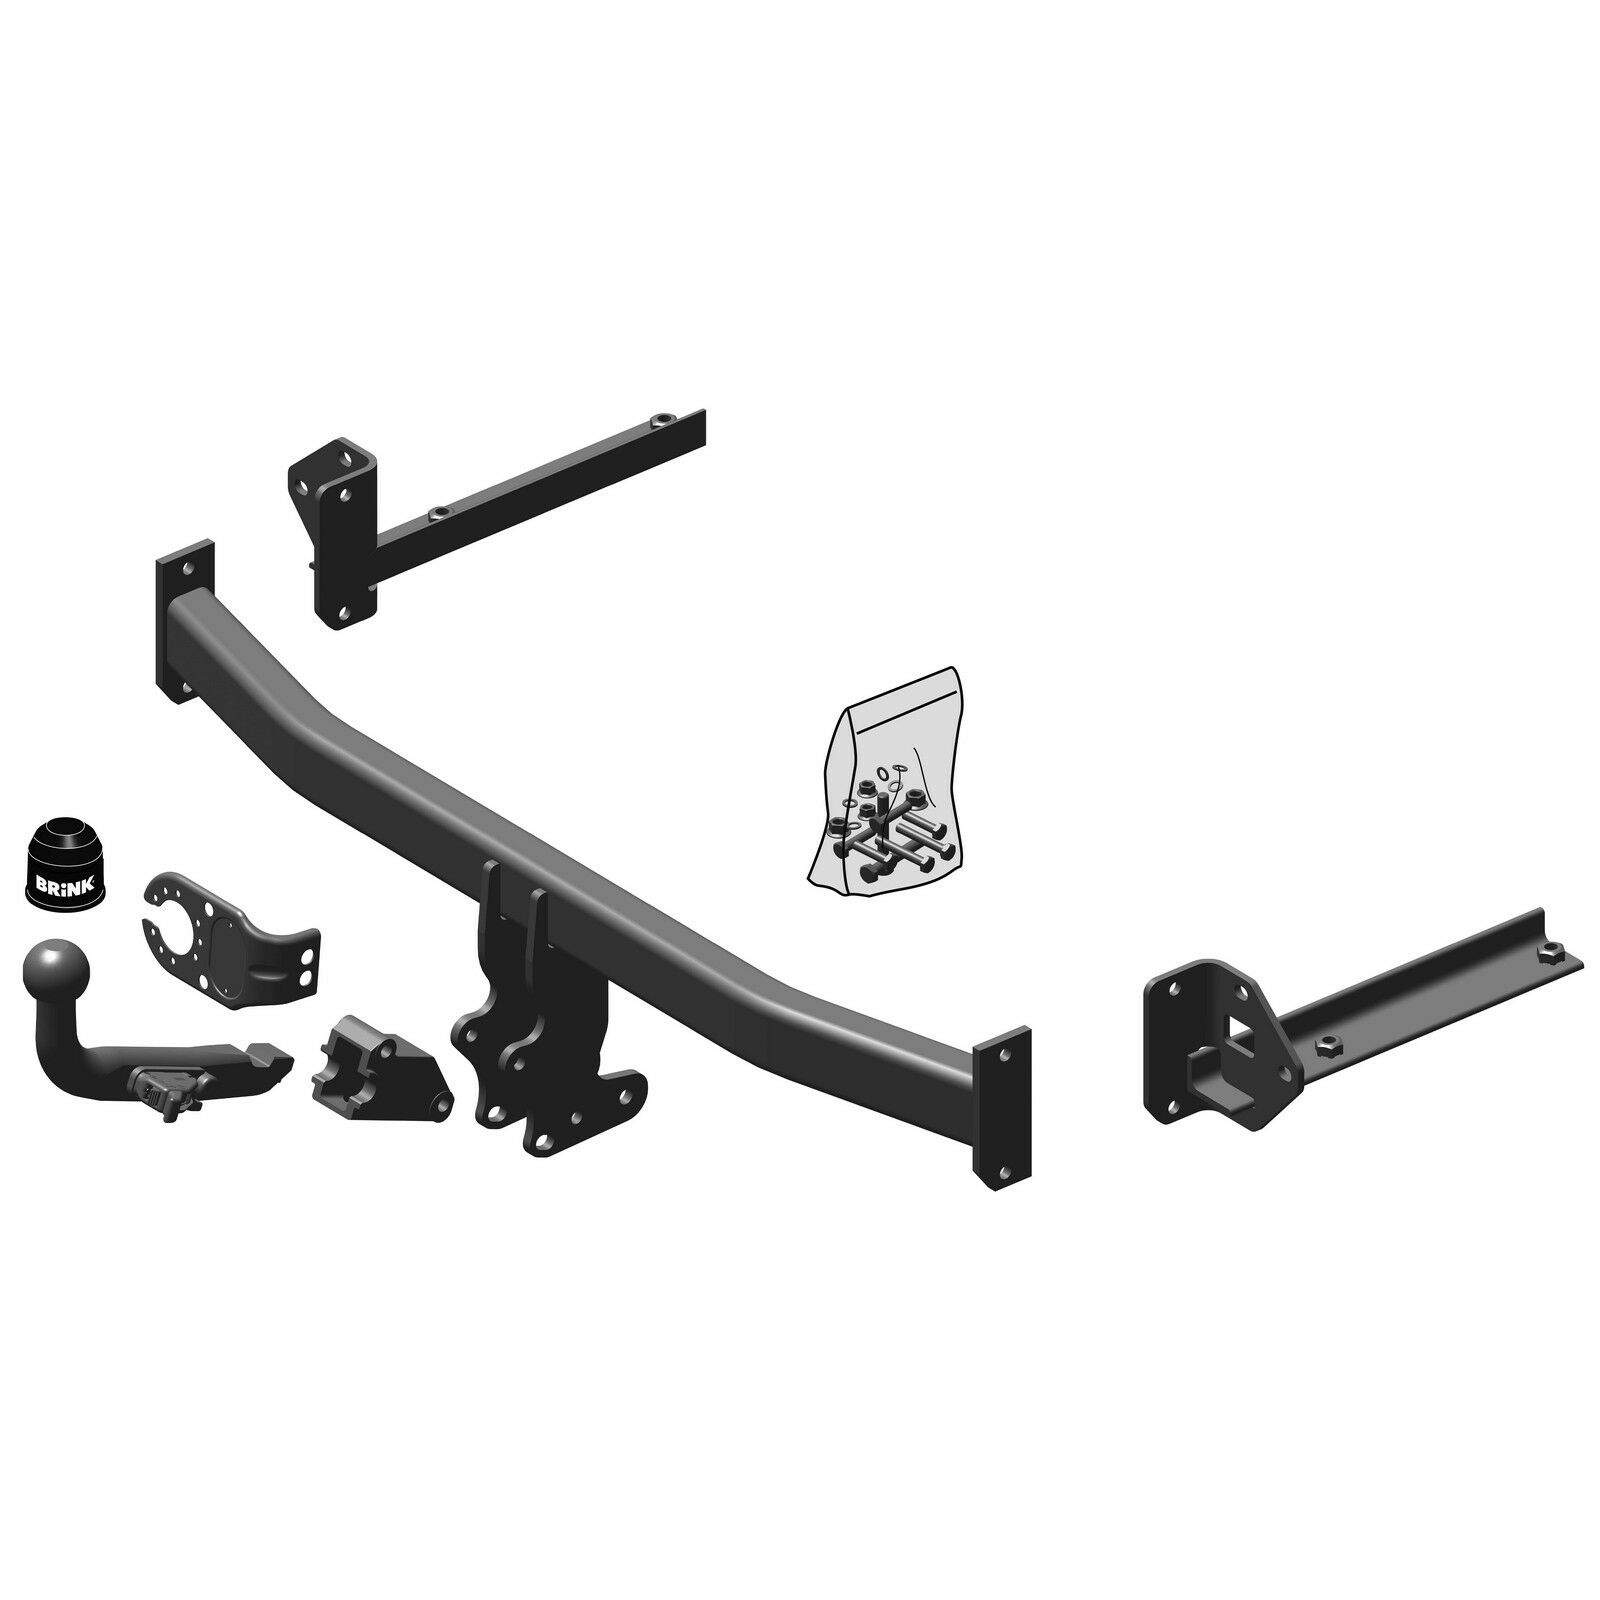 Brink Towbar For Honda Civic 5 Door Hatch Only 2005 2012 Iveco Marine Wiring Diagram Detachable Tow Bar